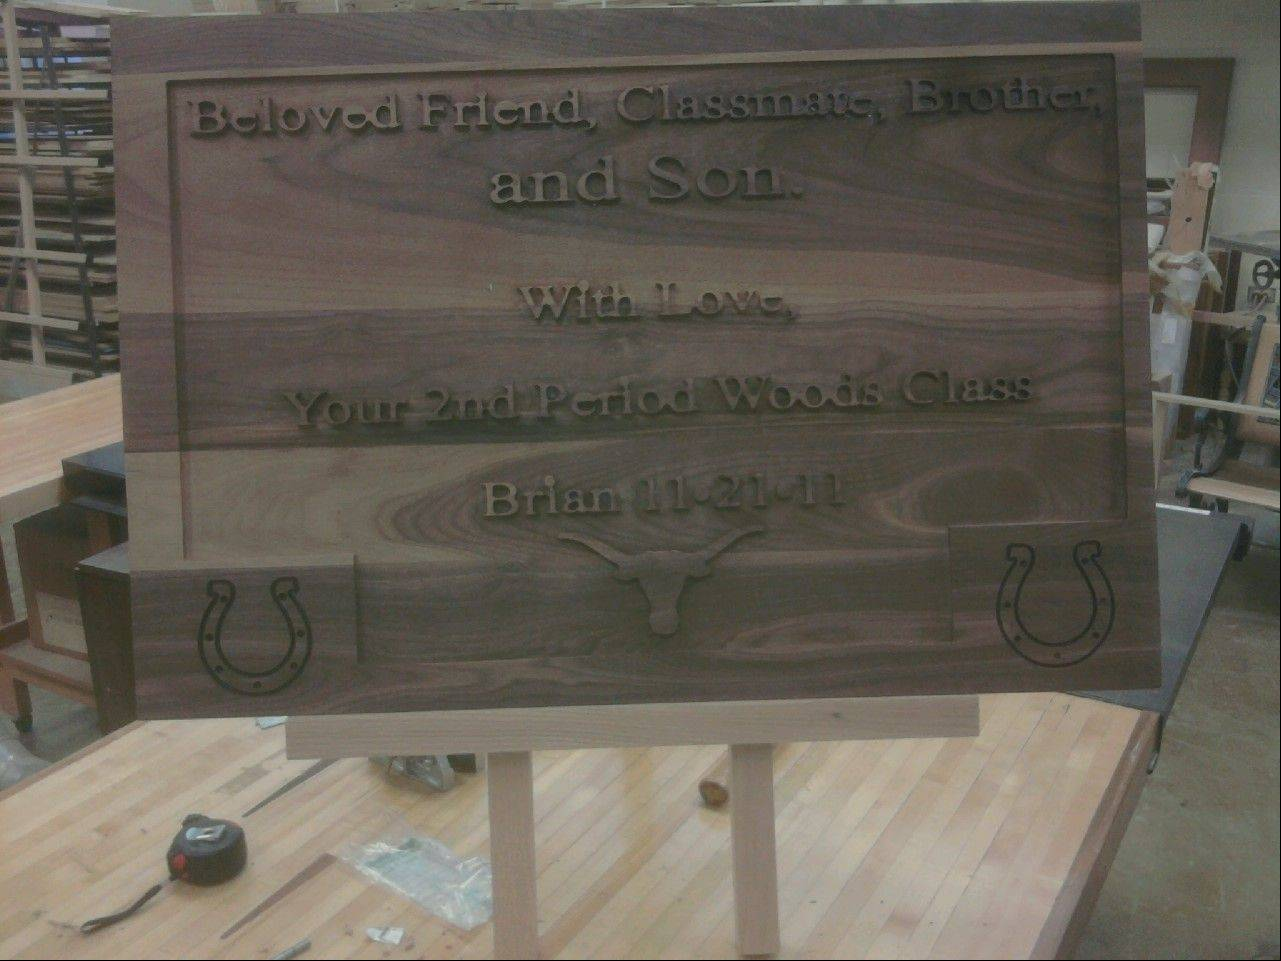 Brian Larsen's woodworking classmates made a walnut engraving to give his family at his wake on Friday, Nov. 25.